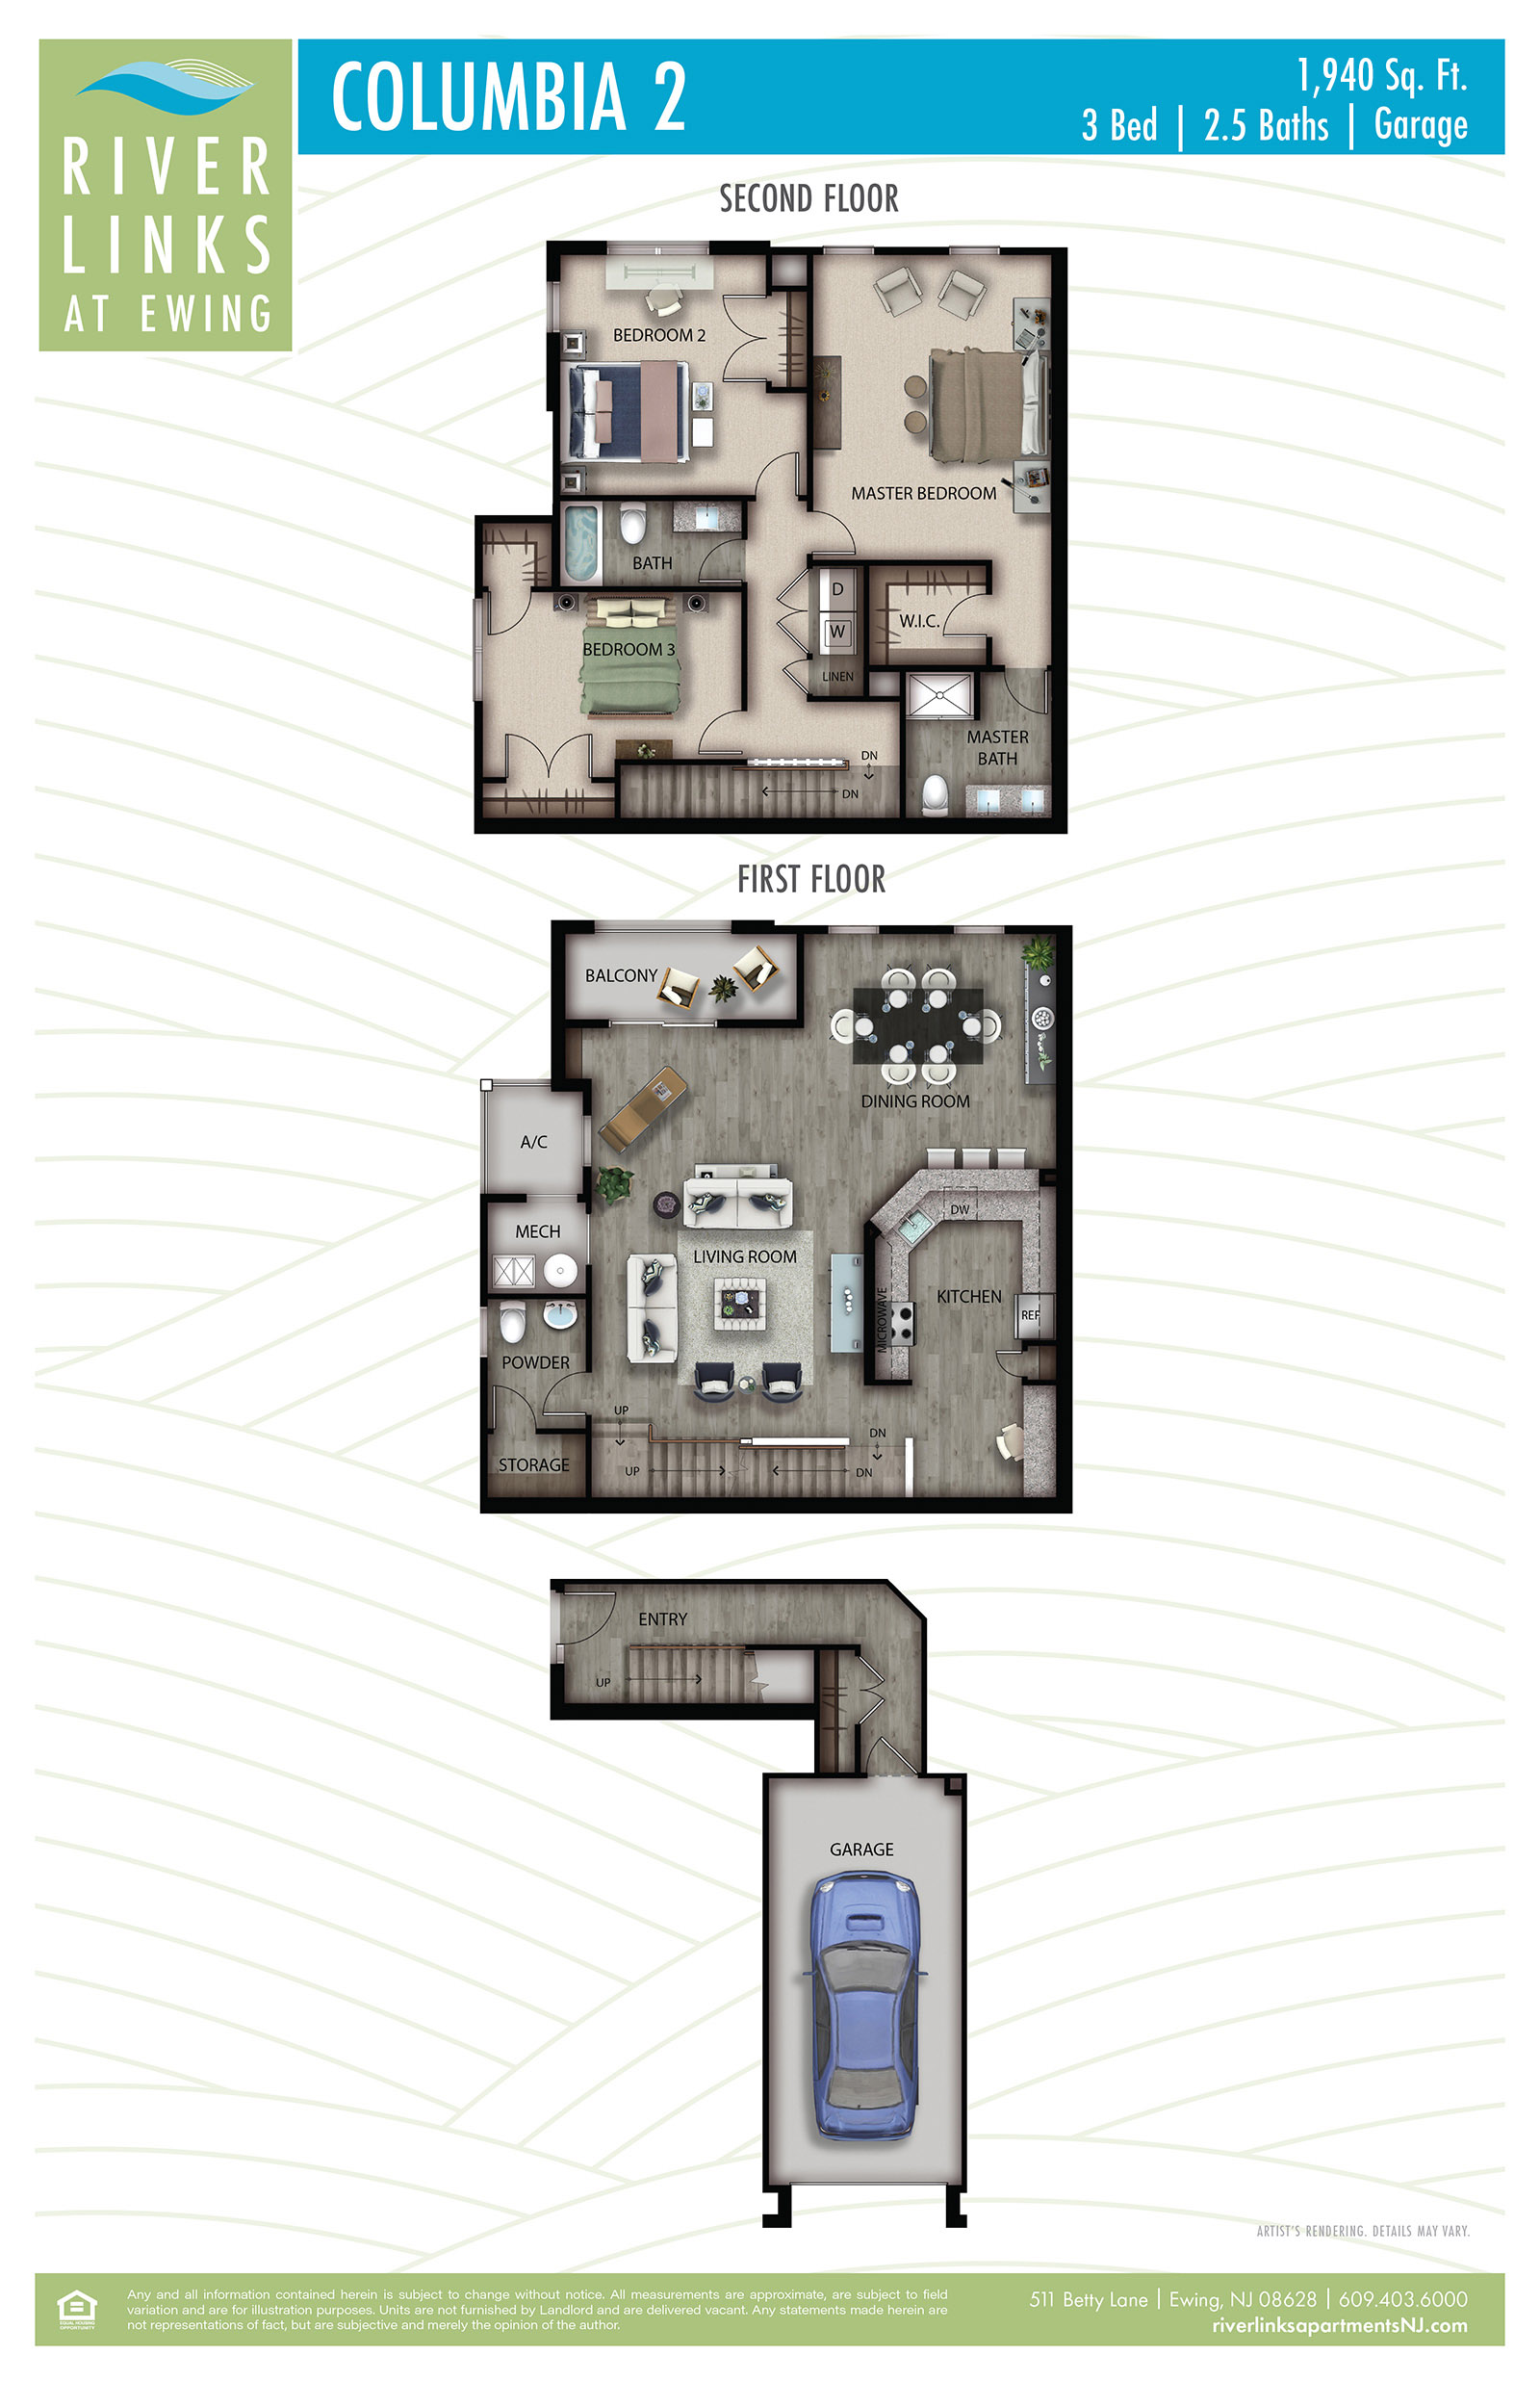 Columbia 2 - 3 Bedroom/2.5 Bath/Garage